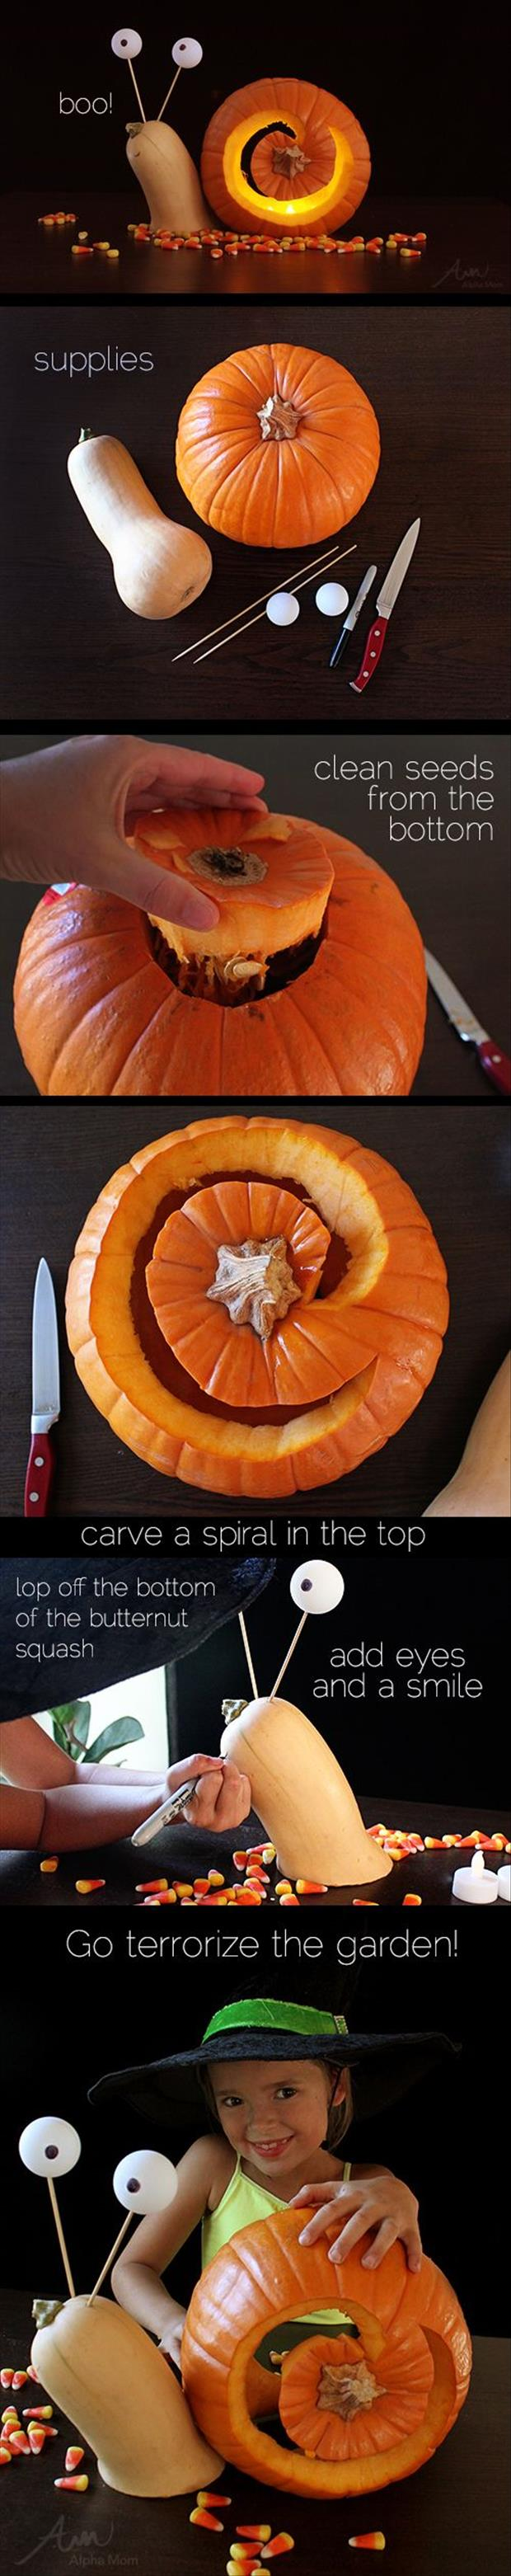 halloween craft ideas (10)